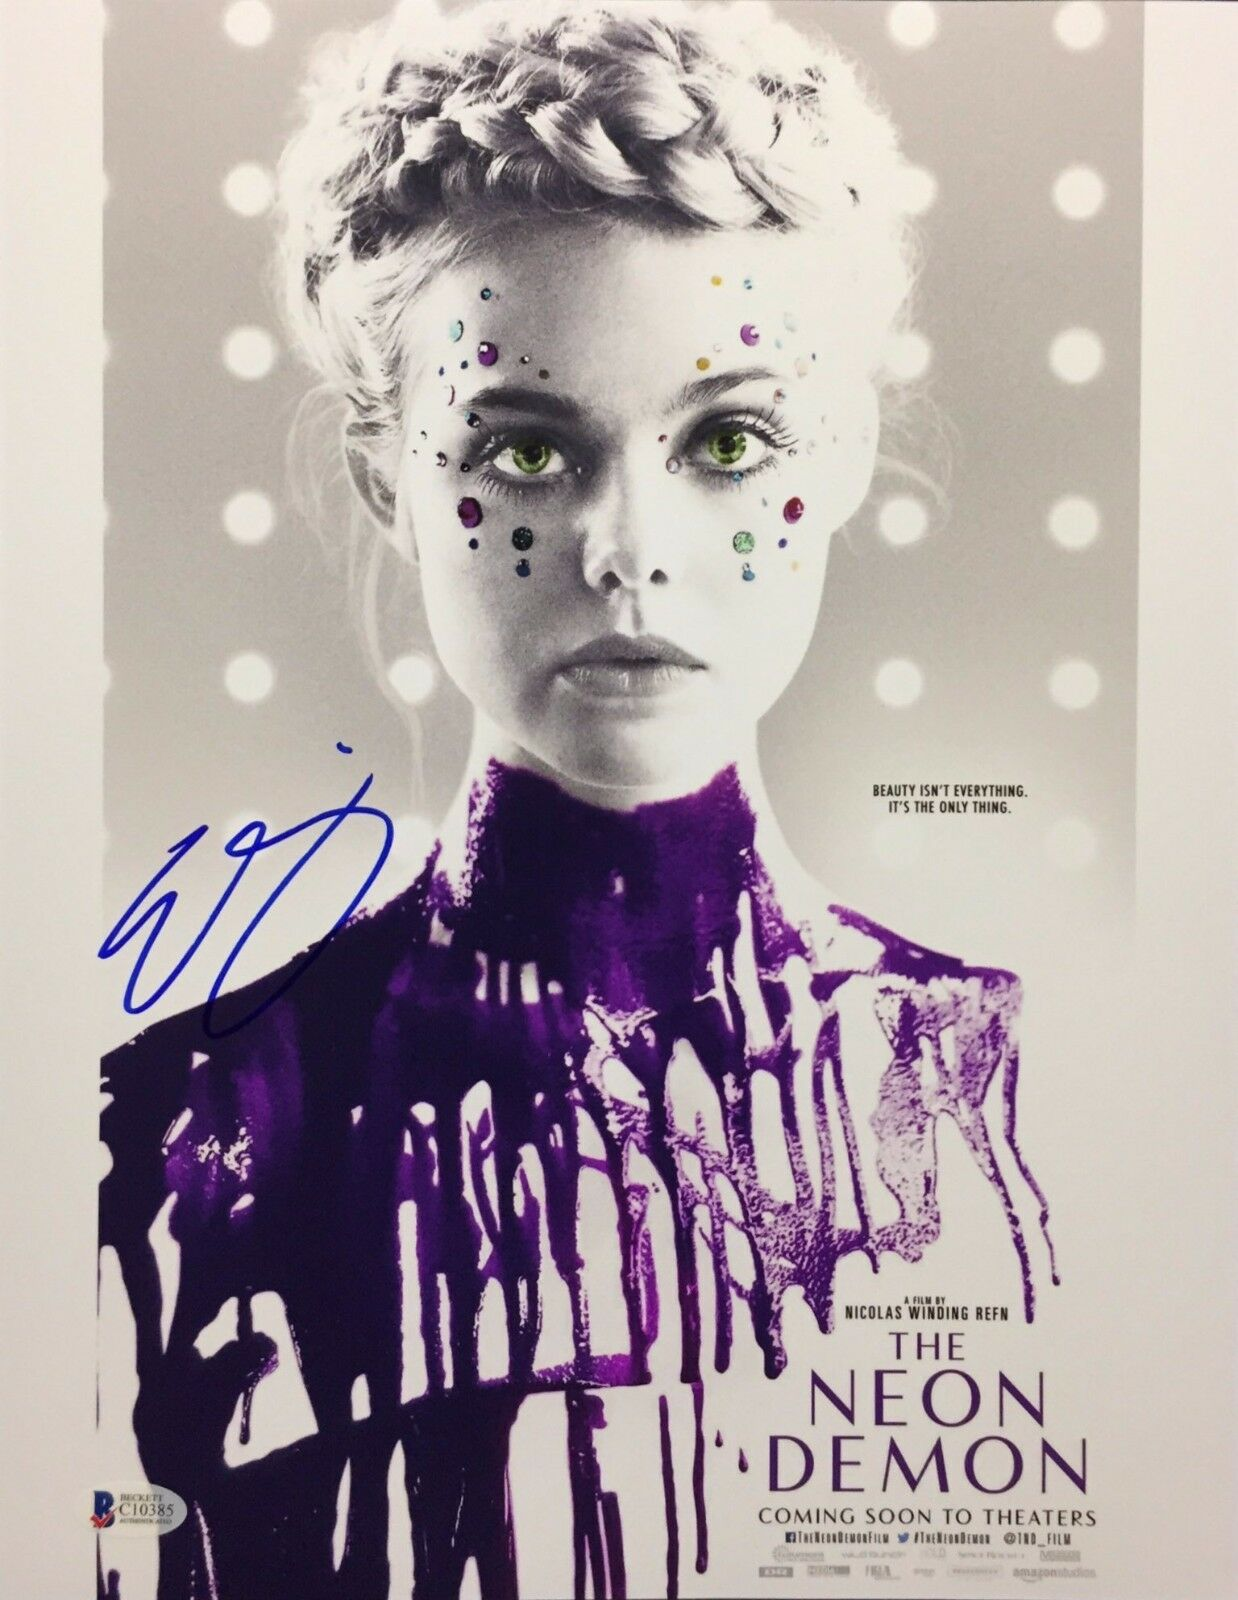 Elle Fanning Signed 'The Neon Demon' 11x14 Photo Beckett BAS C10385